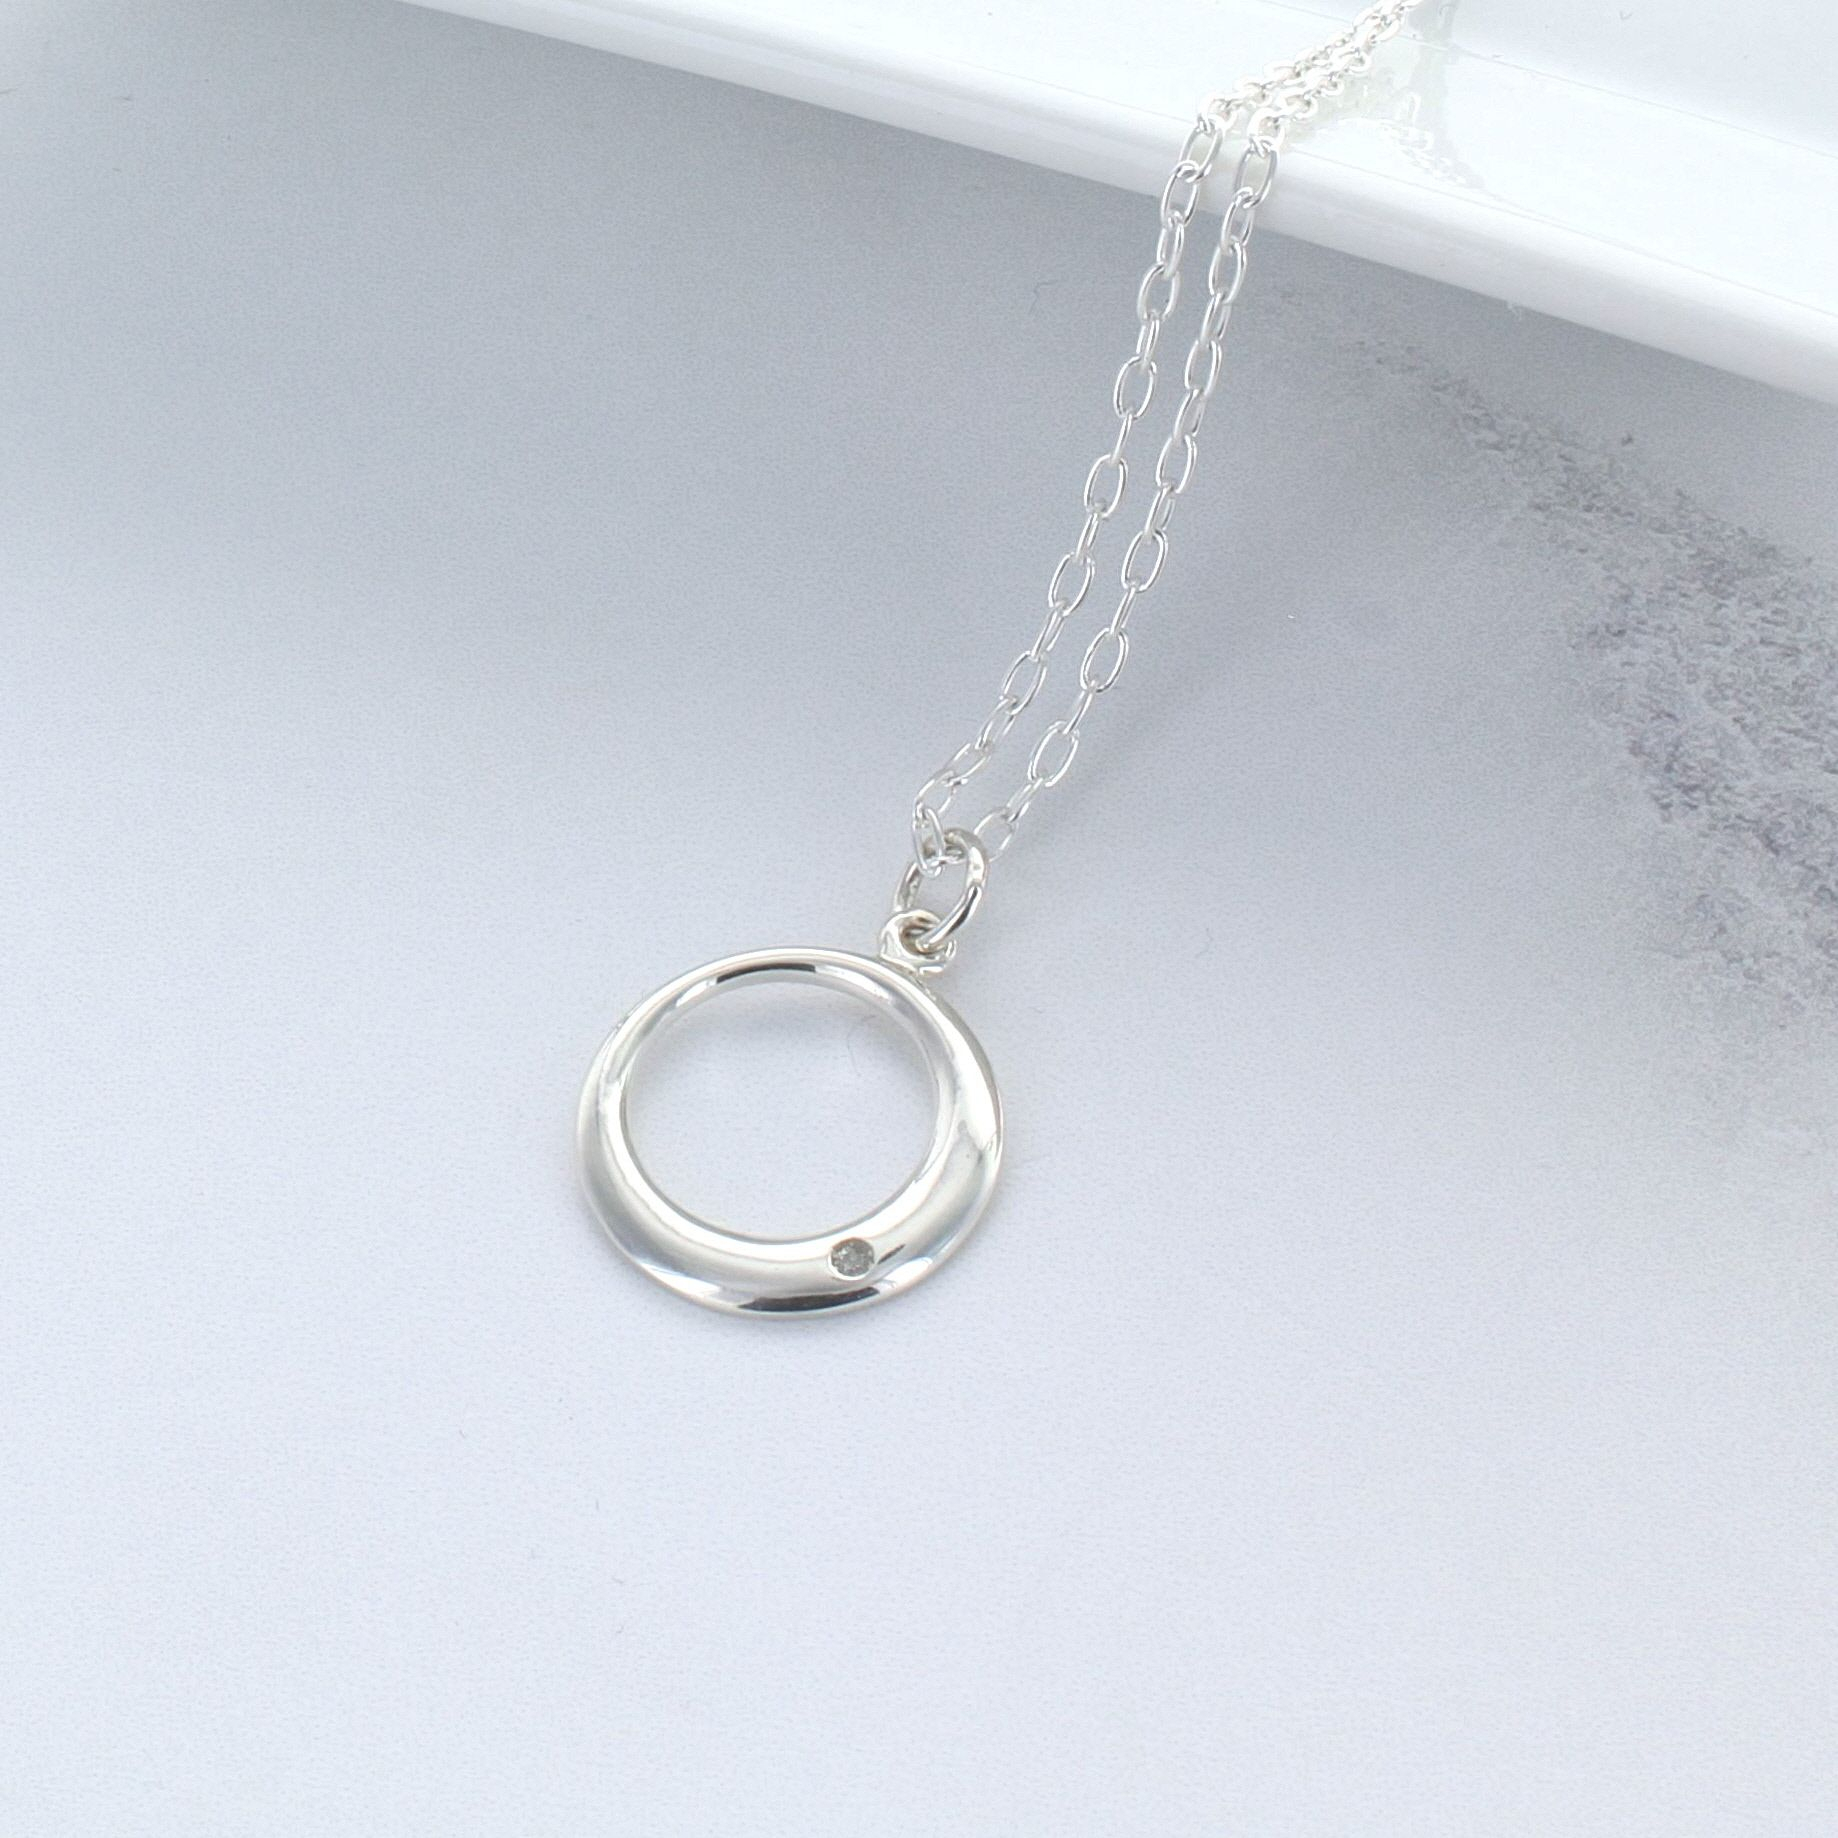 Circle Of Life Diamond Necklace Intended For 2020 Classic Cable Chain Necklaces (View 11 of 25)